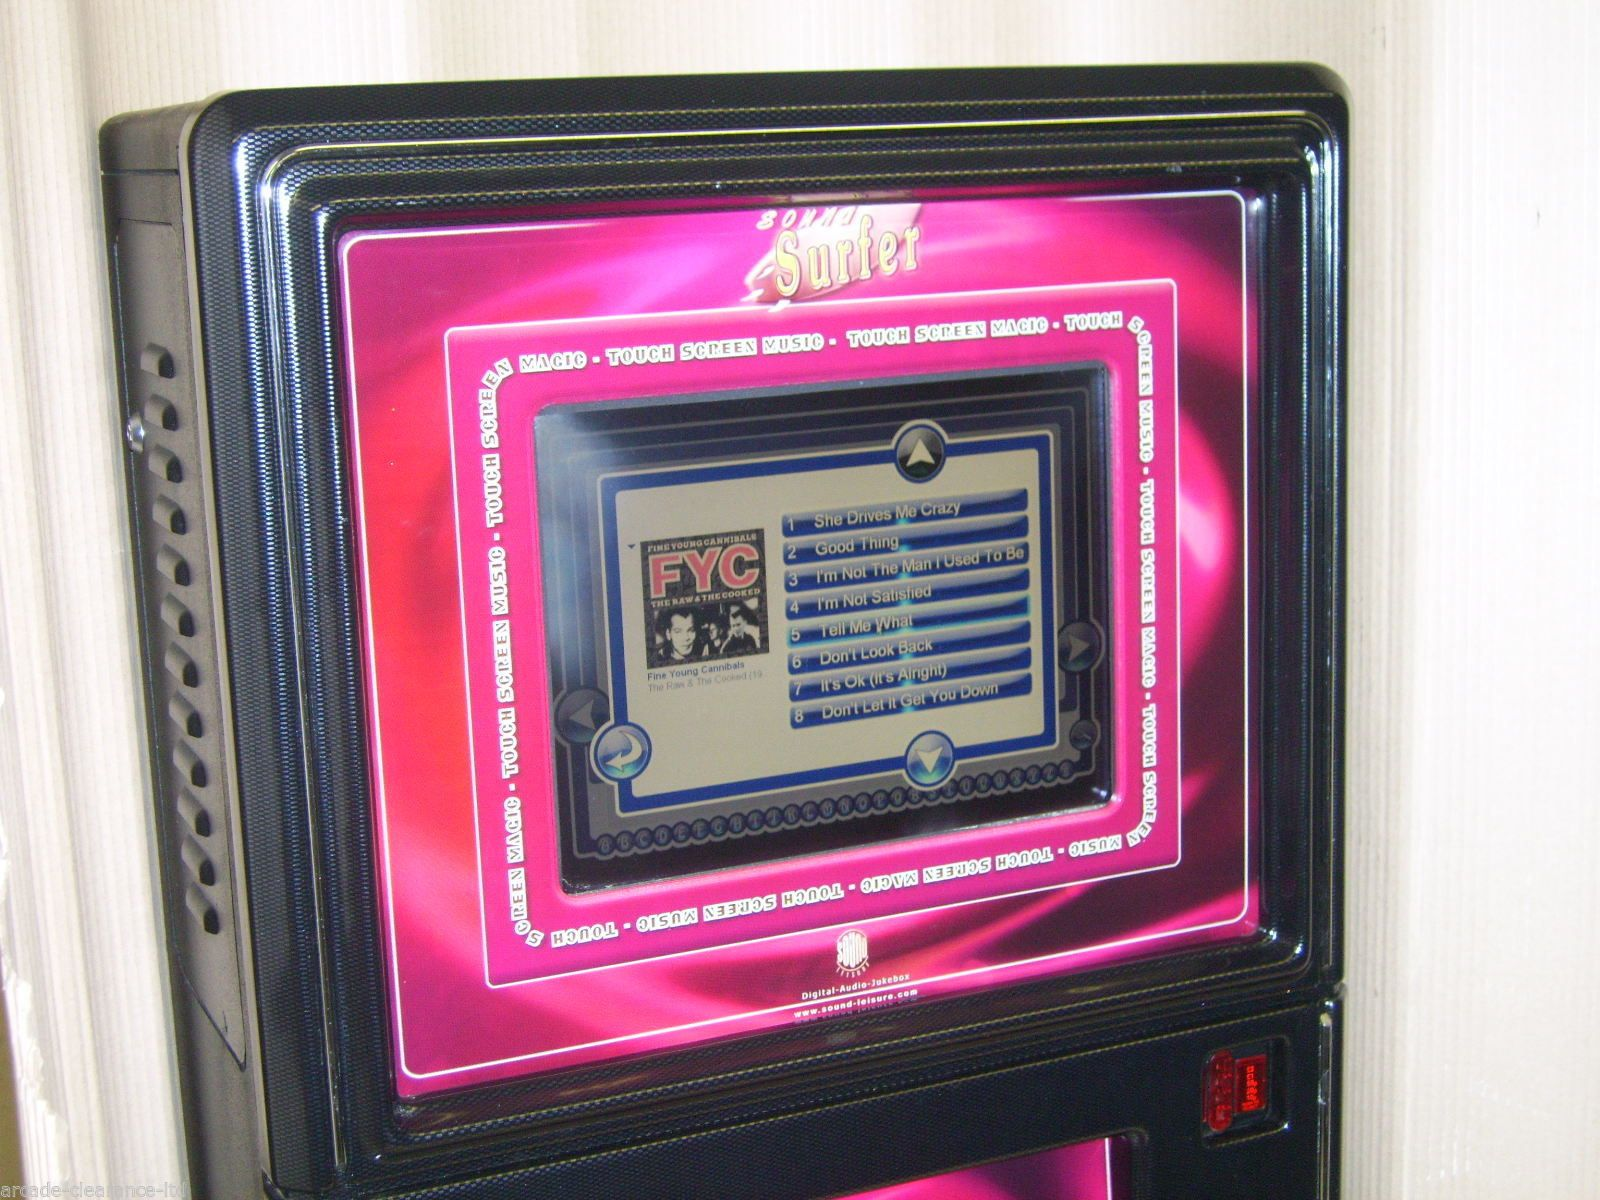 Wall Mounted Touchscreen Digital Mp3 Jukebox Home Use